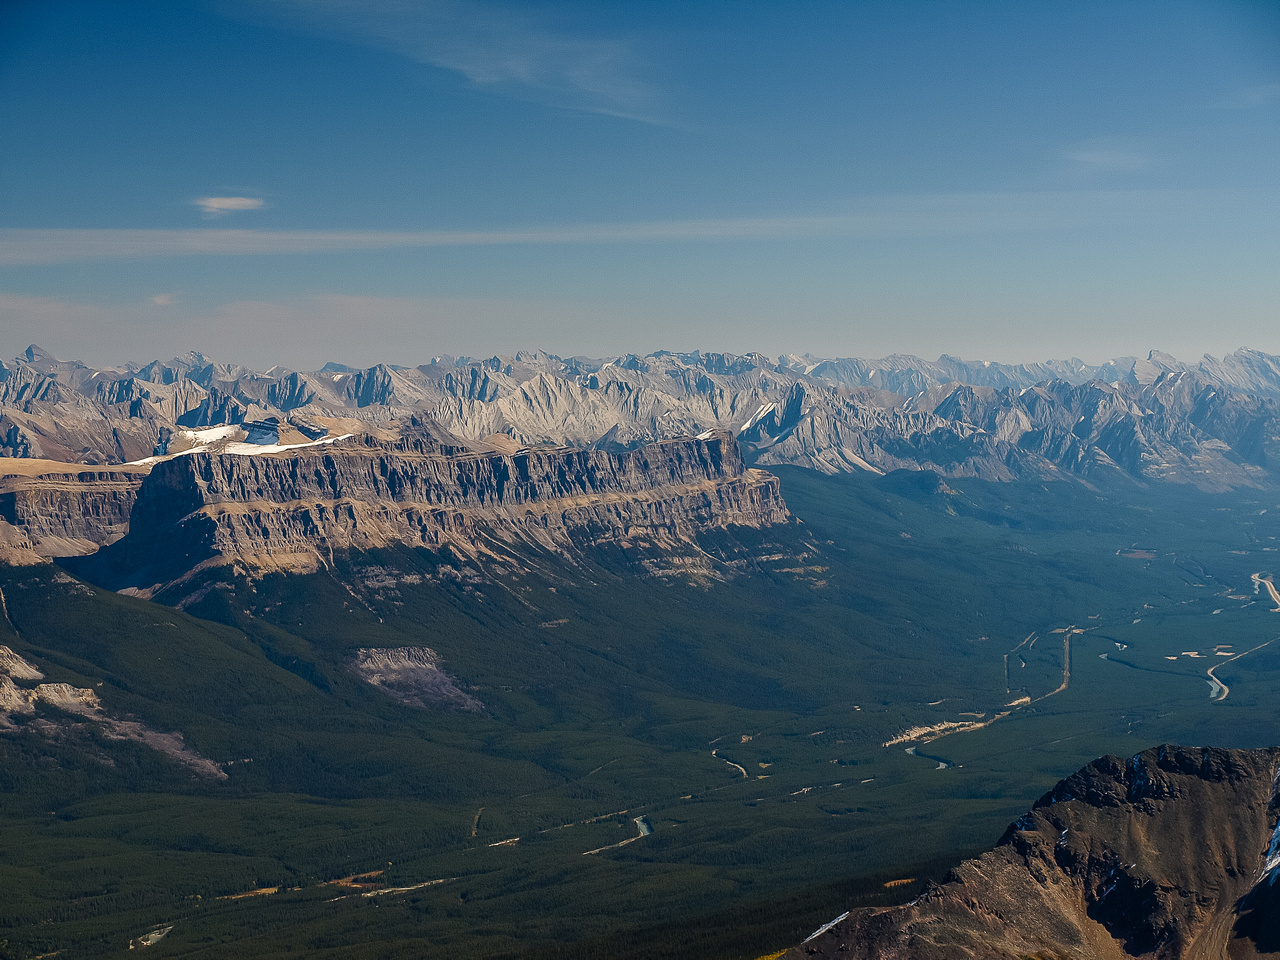 A wonderful view from my perch, of Castle Mountain and Bow Valley favorites like Aylmer and Rundle visible.